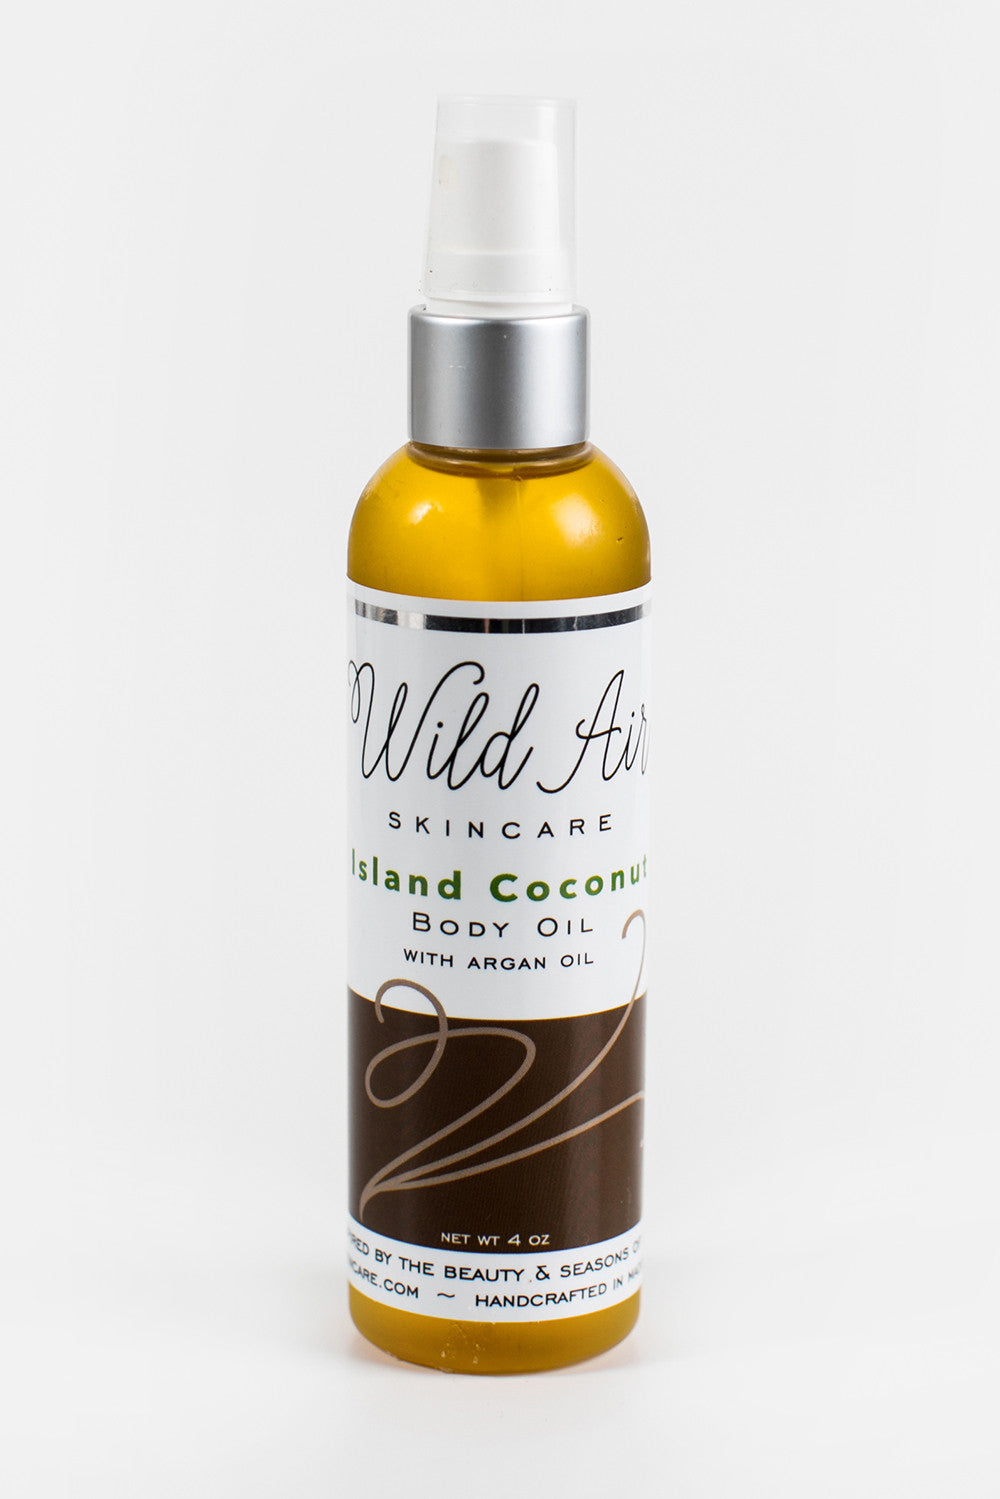 Island Coconut Body Oil